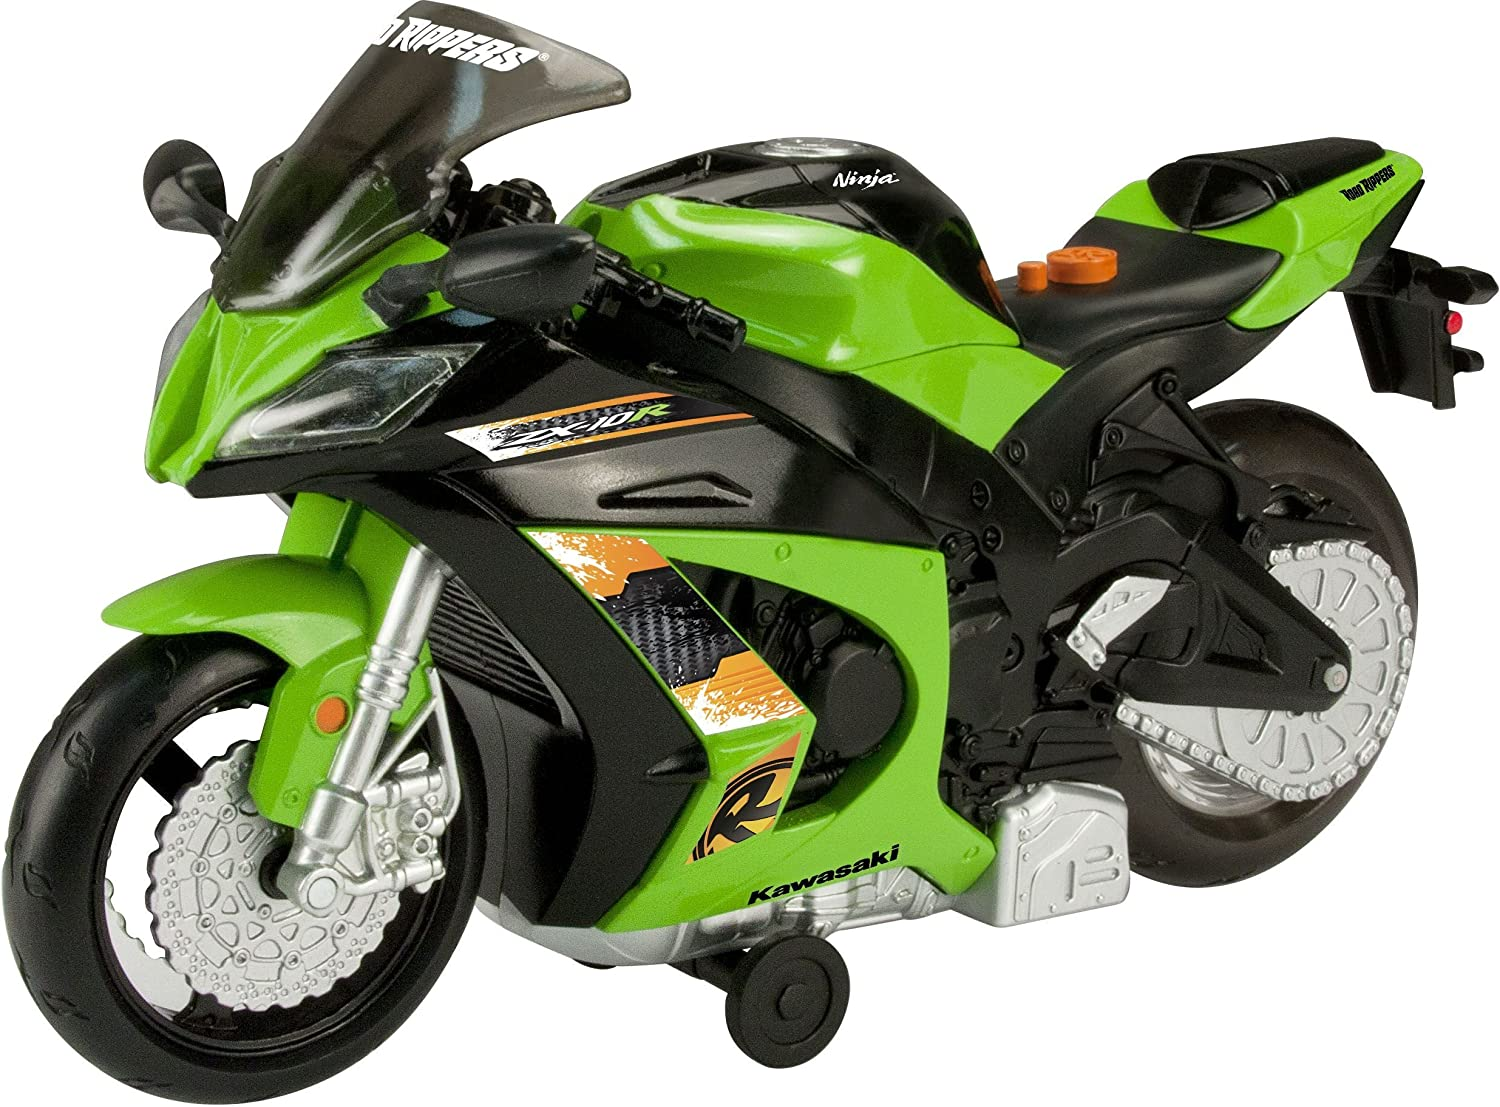 Amazon.com: Kawasaki Ninja Road Rippers Wheelie Bike: Toys ...